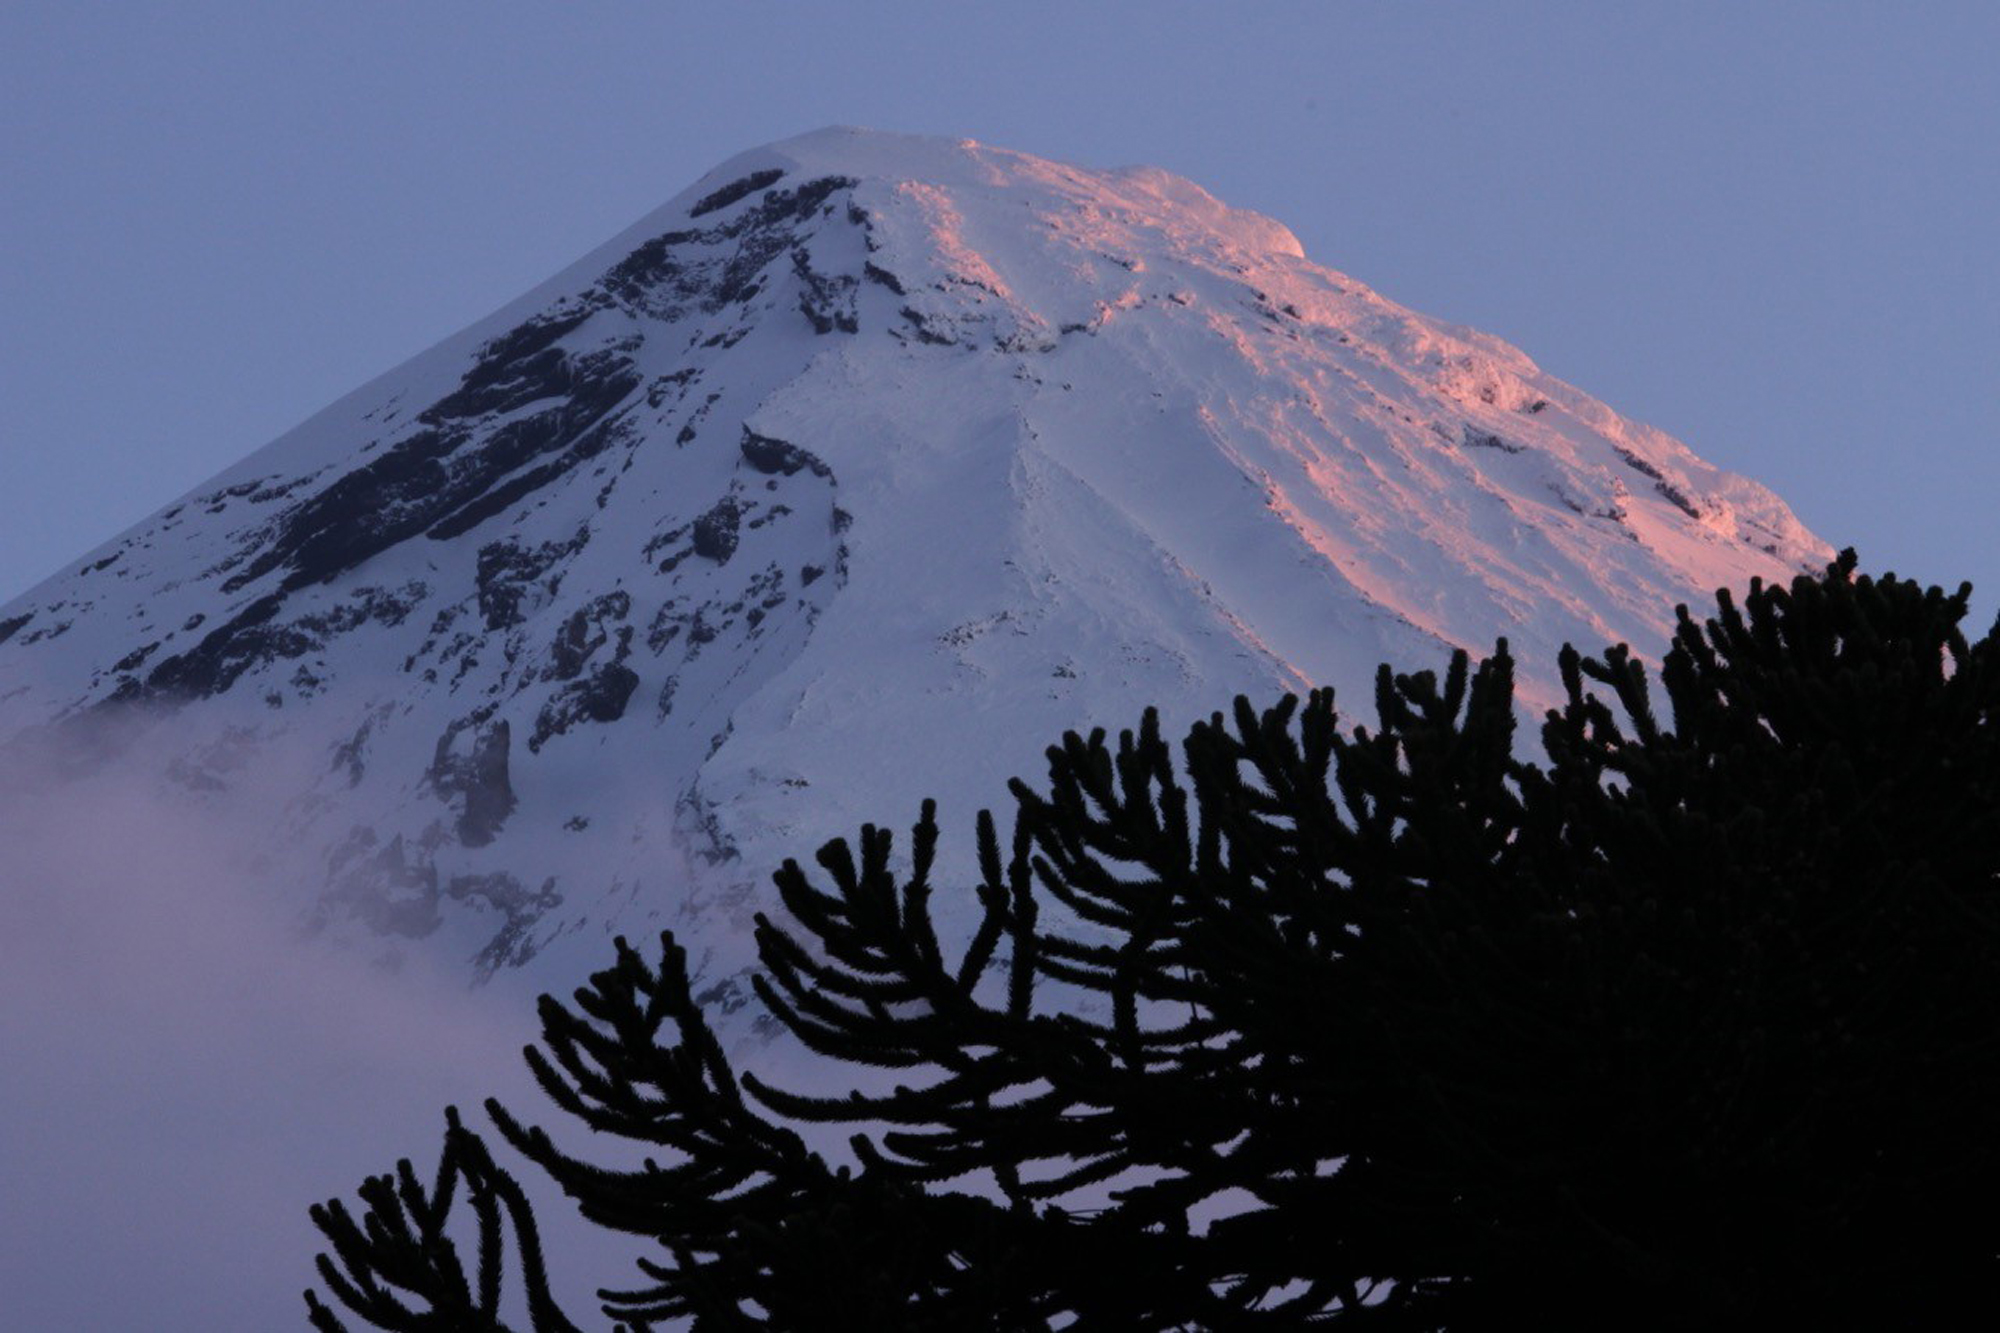 Canopy of an araucaria tree (Araucaria araucana) silhouetted against the sunset-coloured peak of Lanin Volcano.